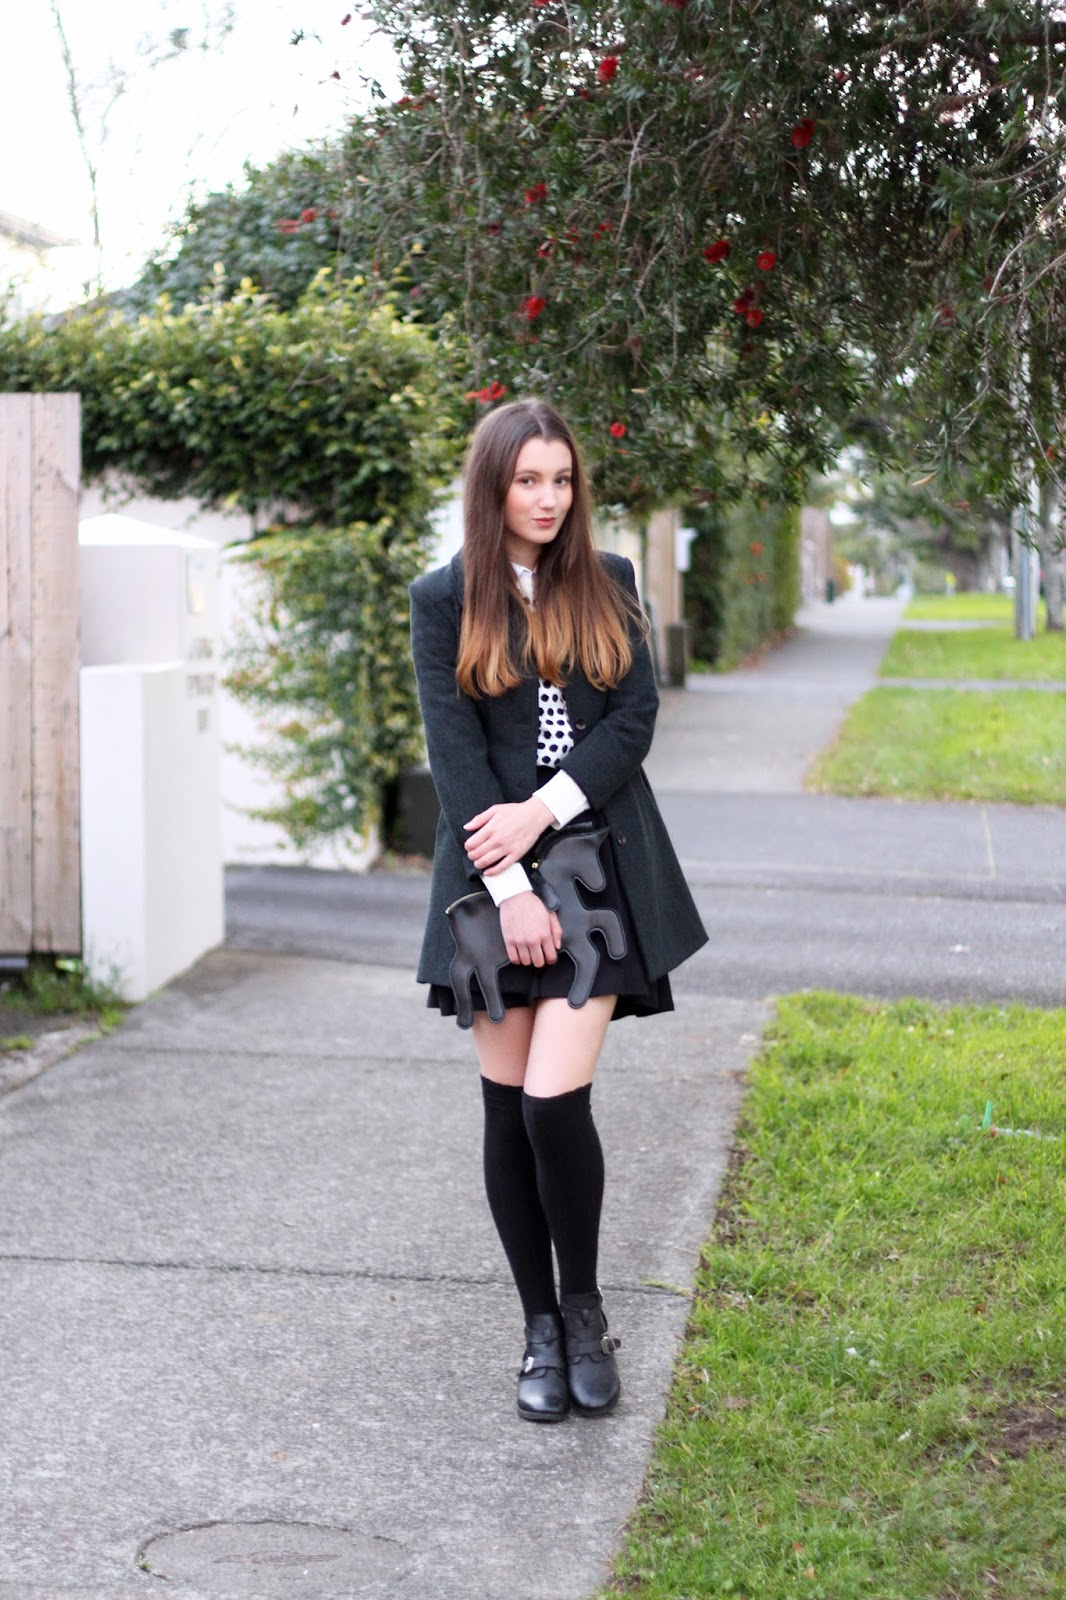 Shop style conquer spencer hastings inspired outfit pretty little